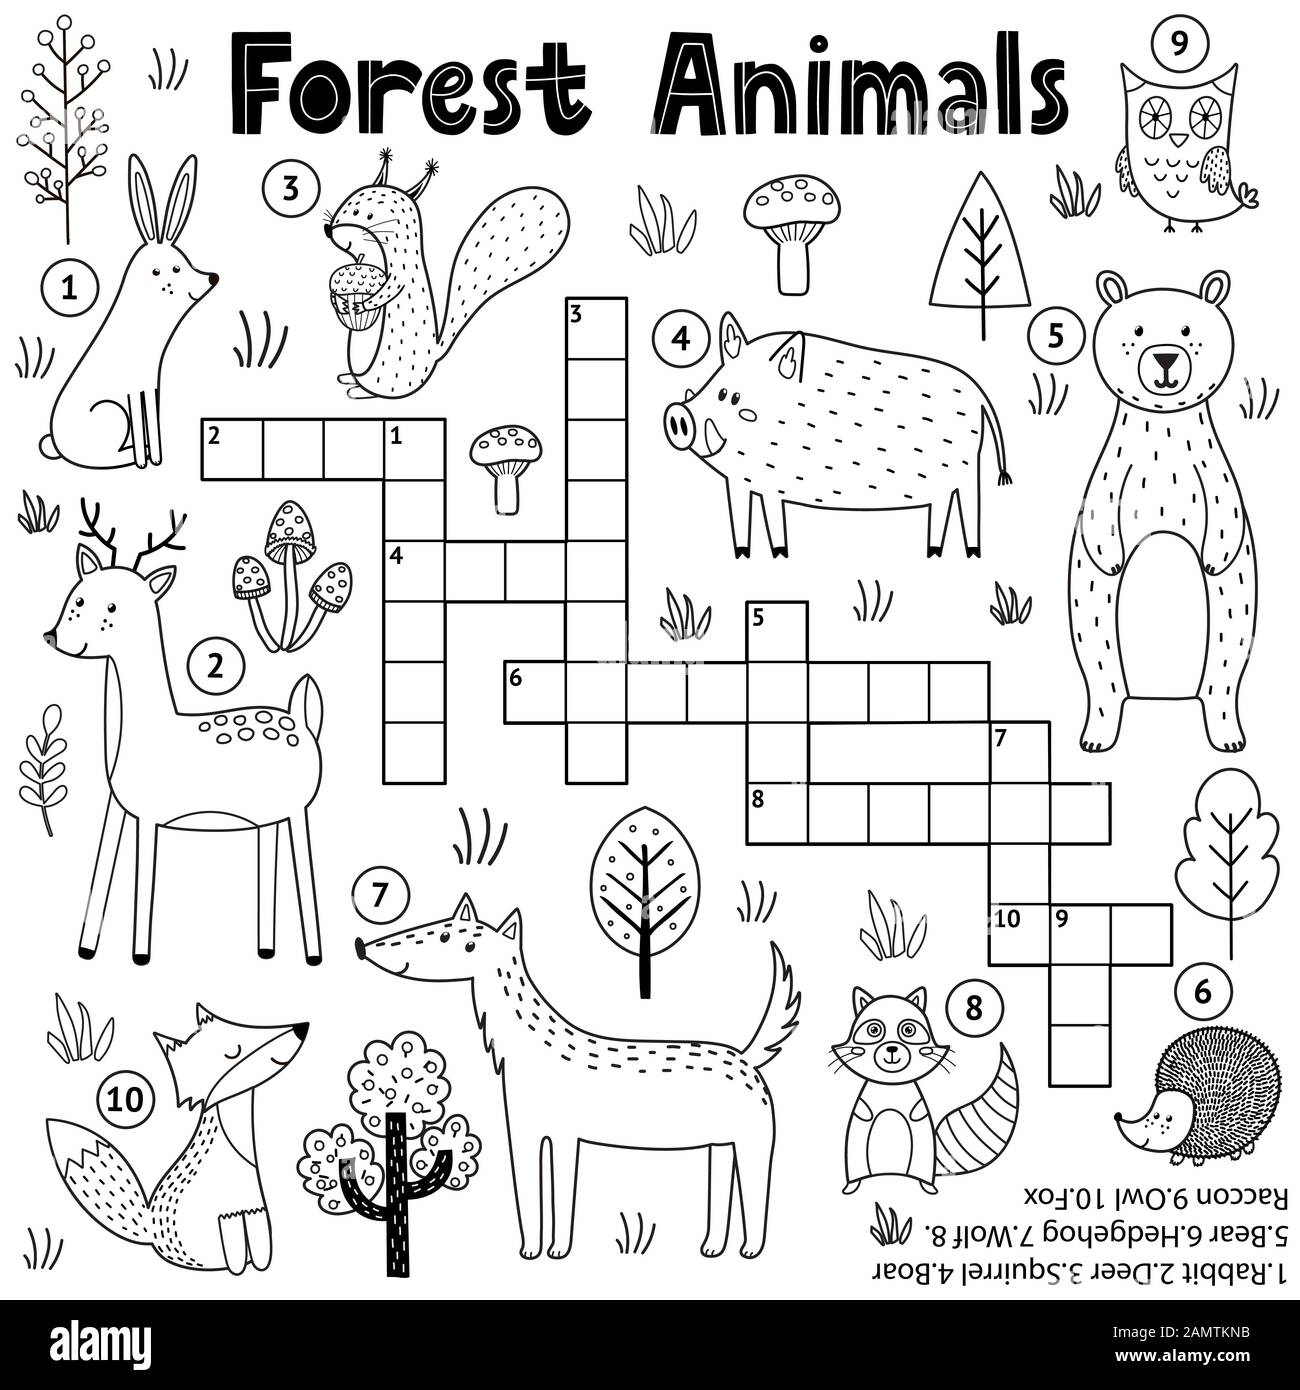 Black And White Crossword For Kids With Forest Animals